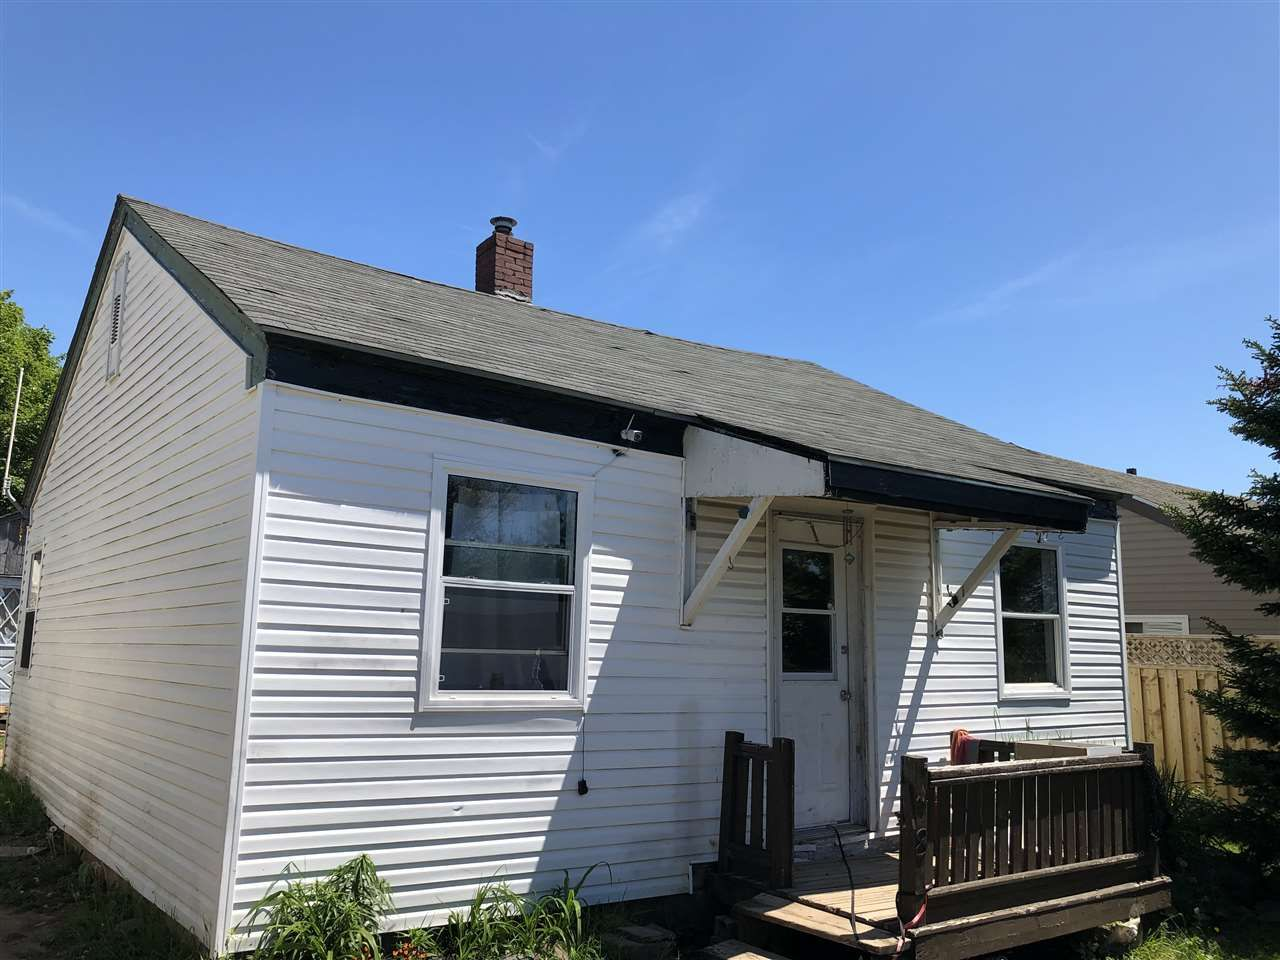 Main Photo: 58 CEDAR Street in Pictou: 107-Trenton,Westville,Pictou Residential for sale (Northern Region)  : MLS®# 202012011